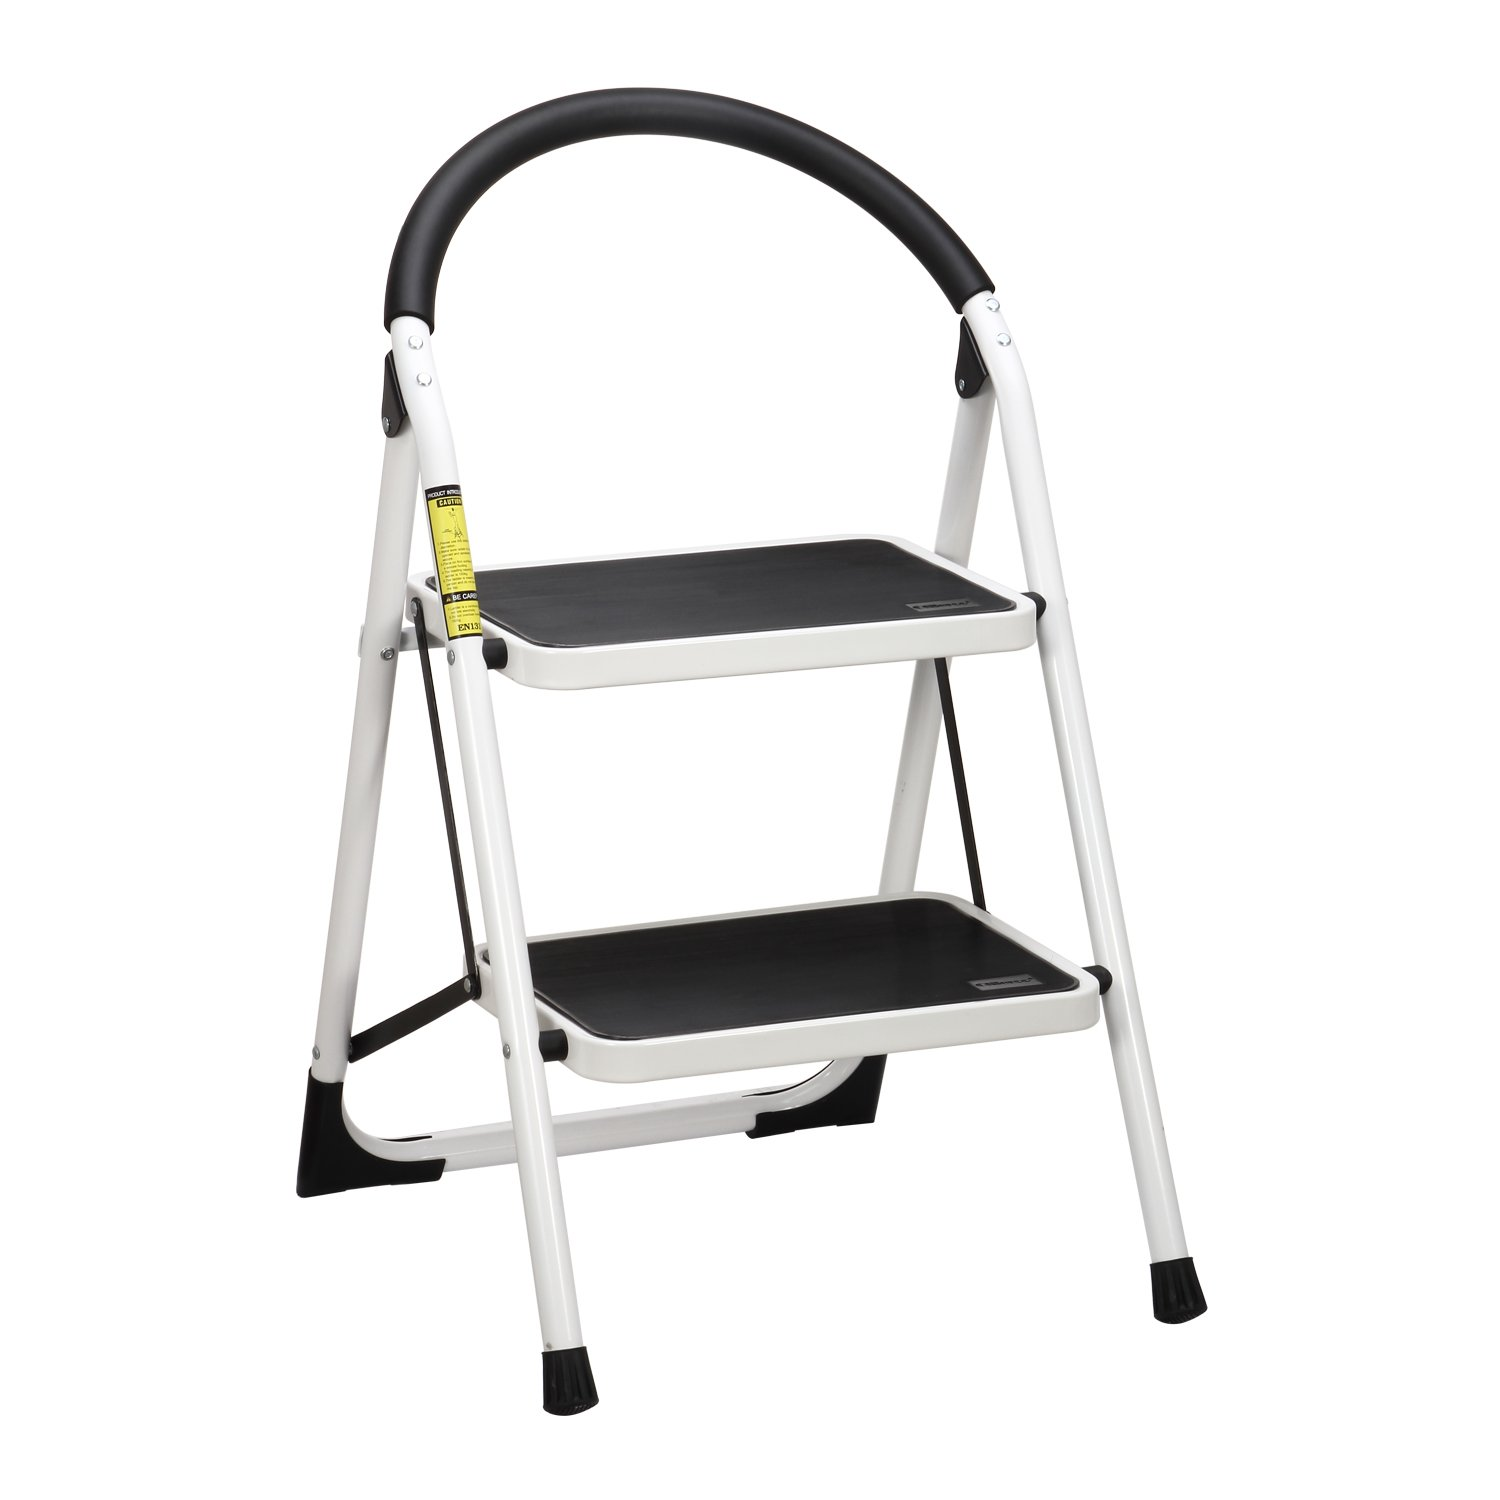 Ollieroo Step Stool EN131 Steel Folding 2 Step Ladder with Comfy Grip Handle Anti-slip Step Mon-marring Feet 330-pound Capacity White TL05121